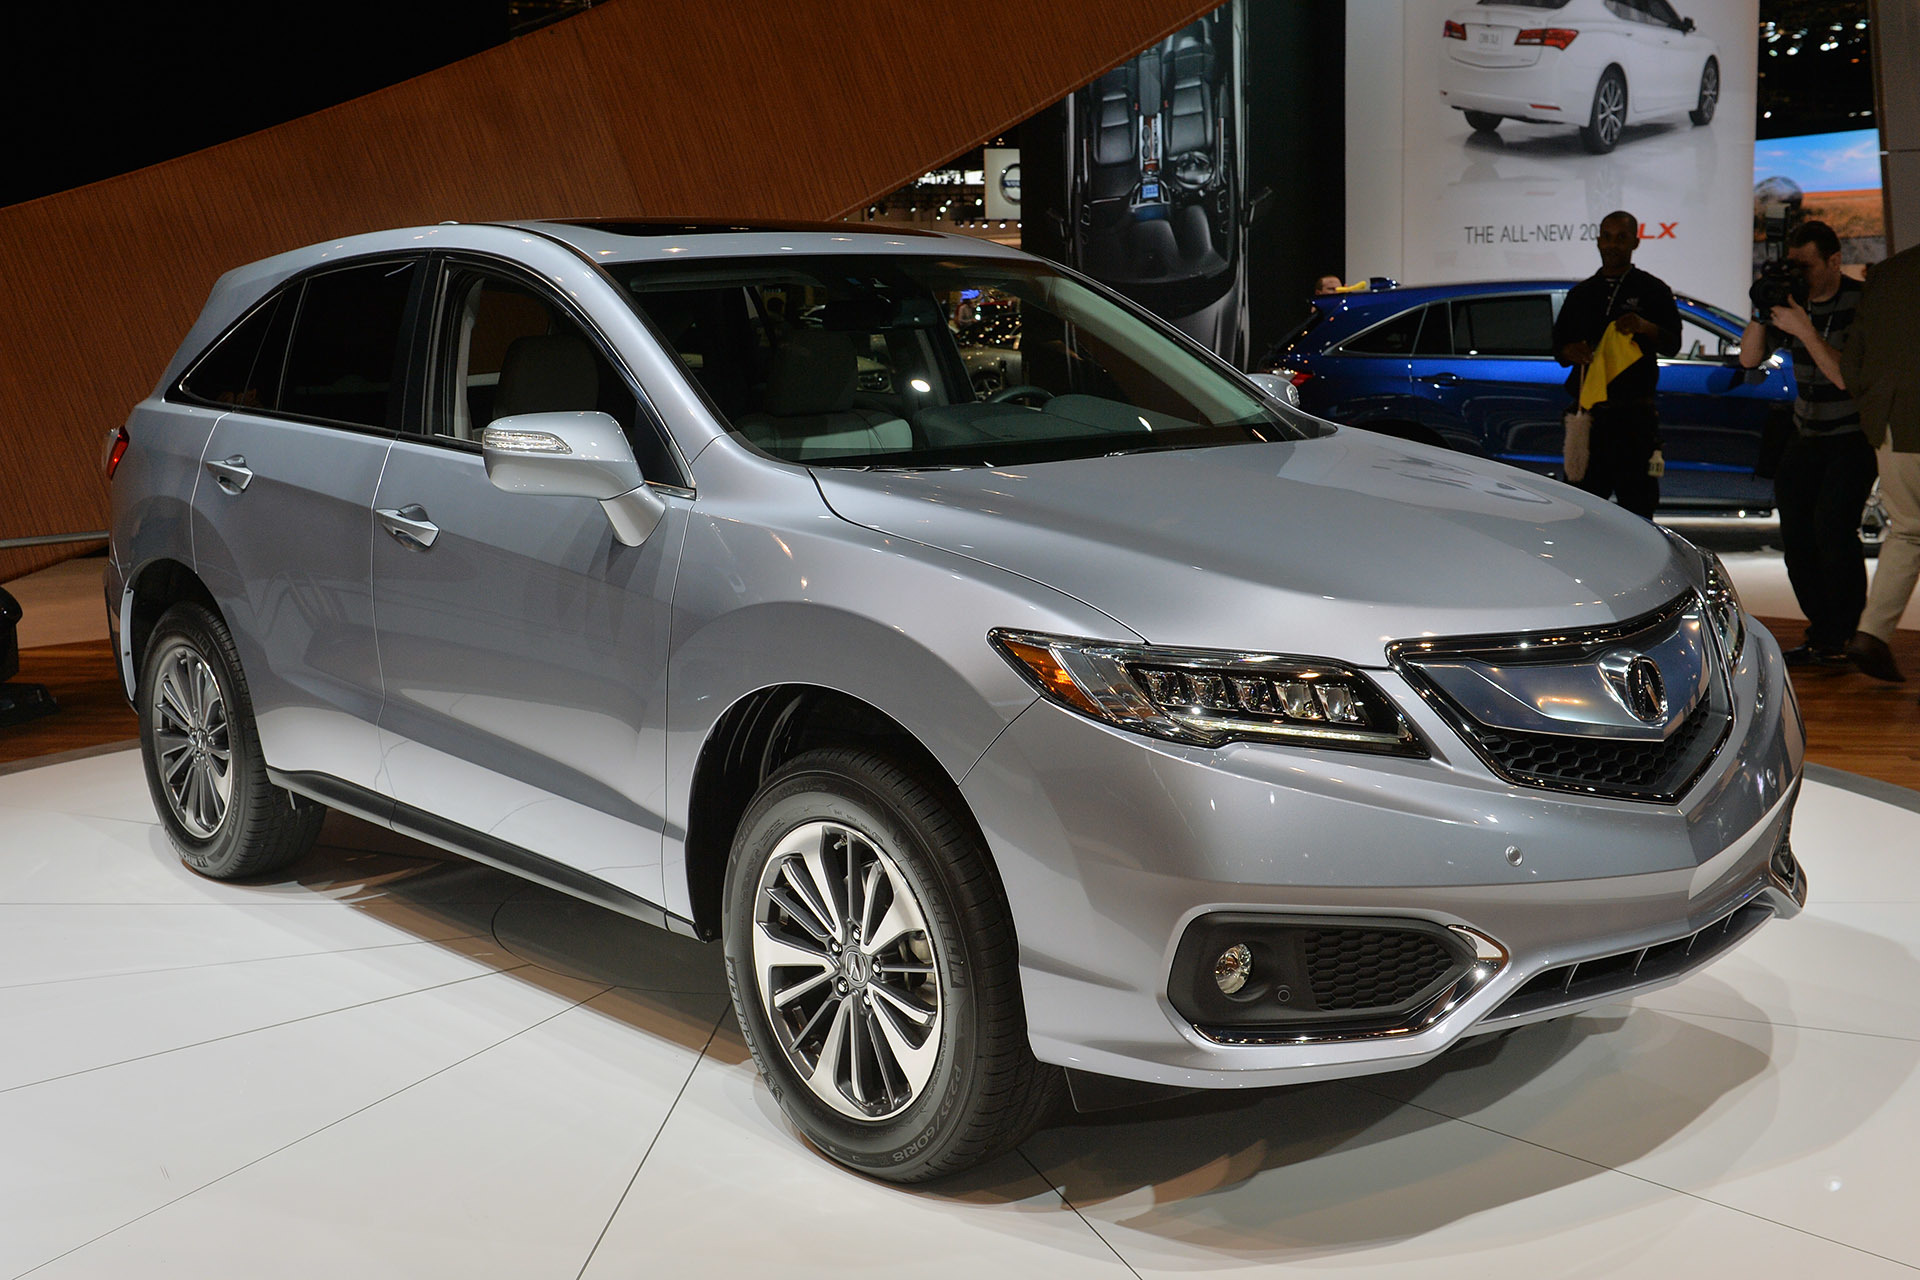 dvd ilx rdx new the available acura now update carnewscafe gps on